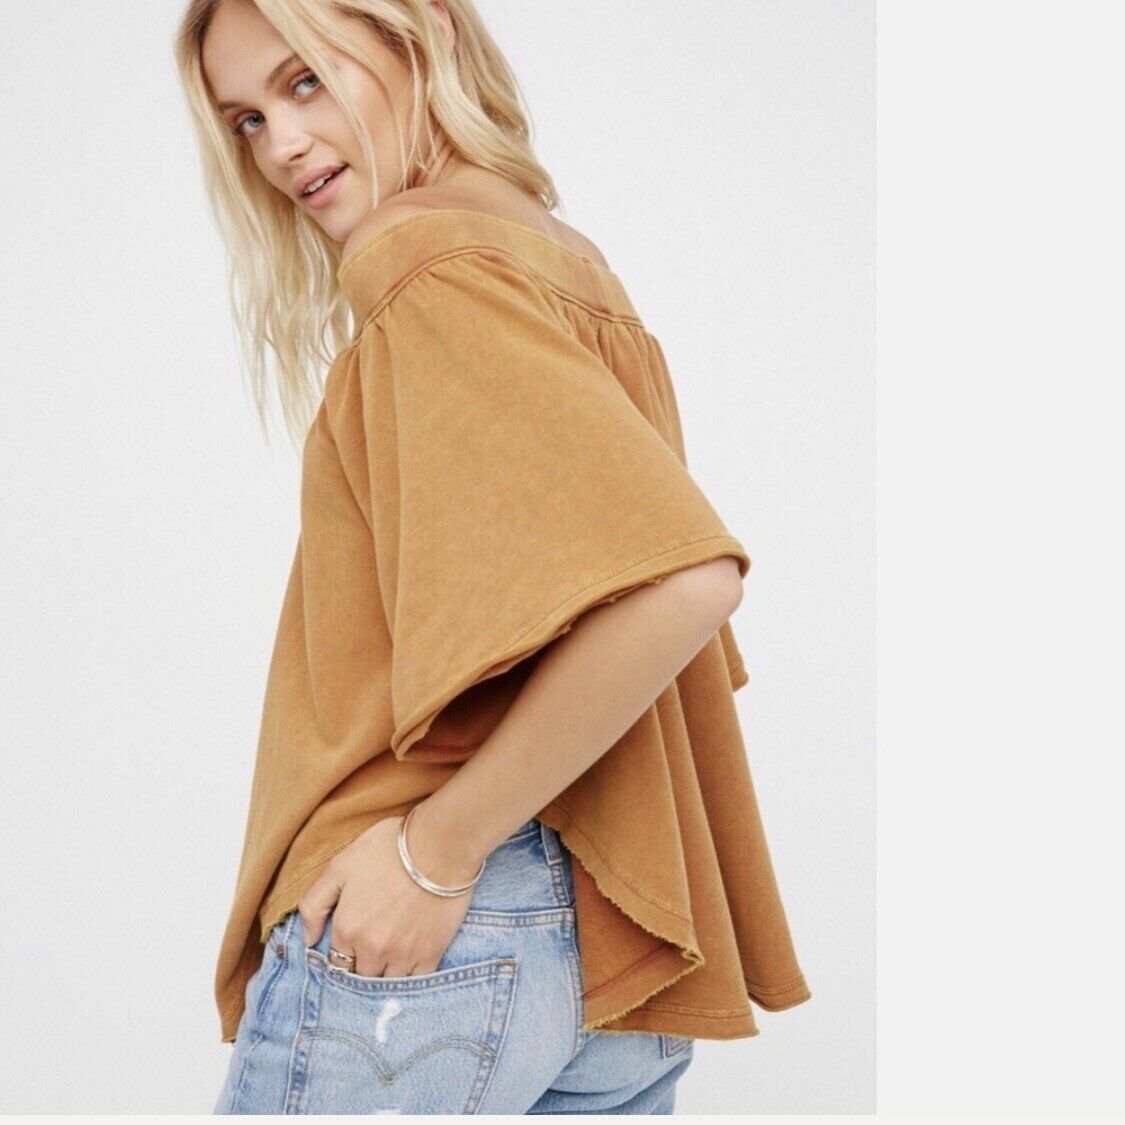 NWT FREE PEOPLE Kiss Me Off Shoulder Knit Top Terracotta SMALL S  OB683180